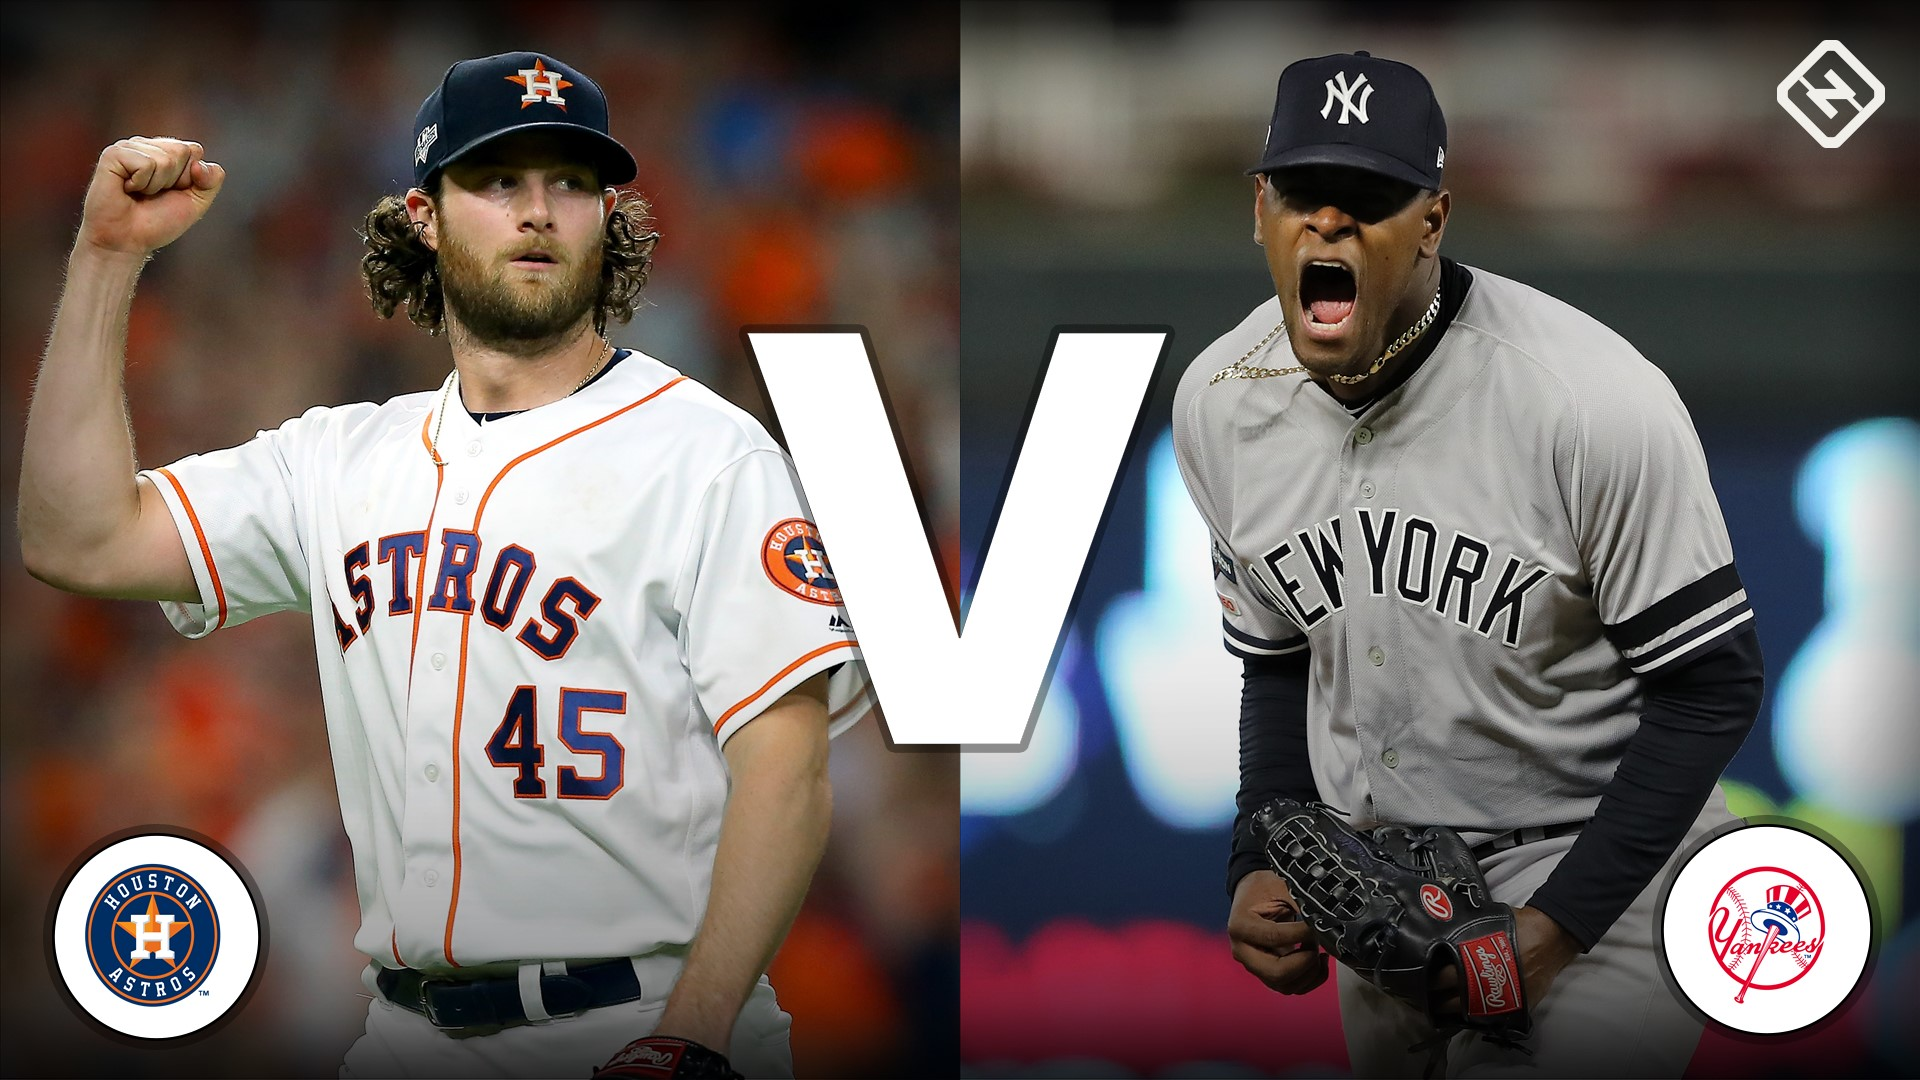 Astros 2019 >> Alcs 2019 Preview Who Has The Edge In Yankees Vs Astros